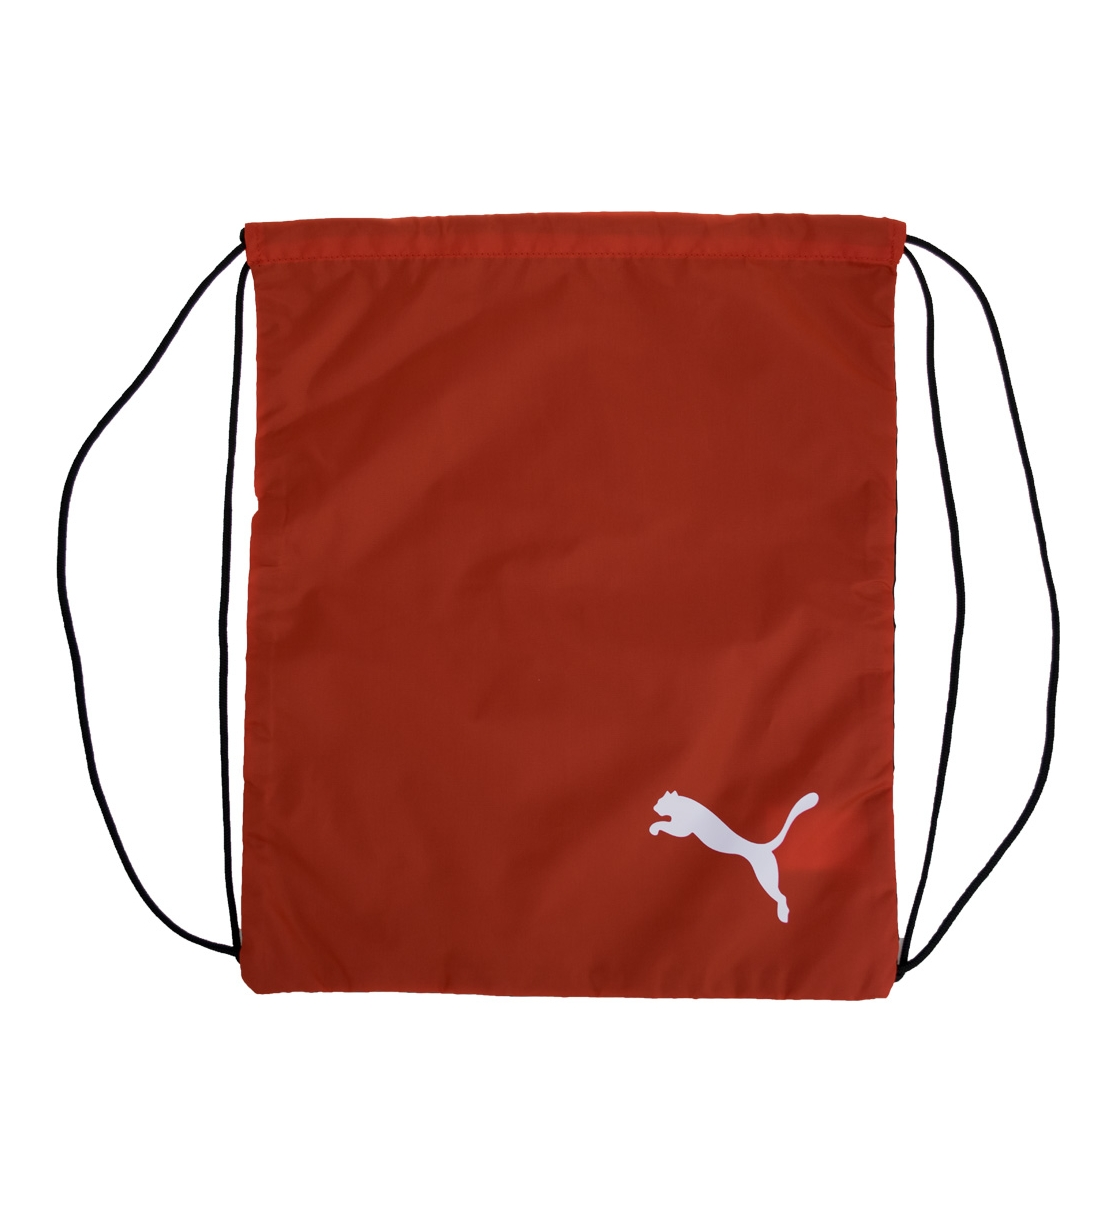 Puma Τσάντα Πουγκί Pro Training Ii Gym Sack 074899